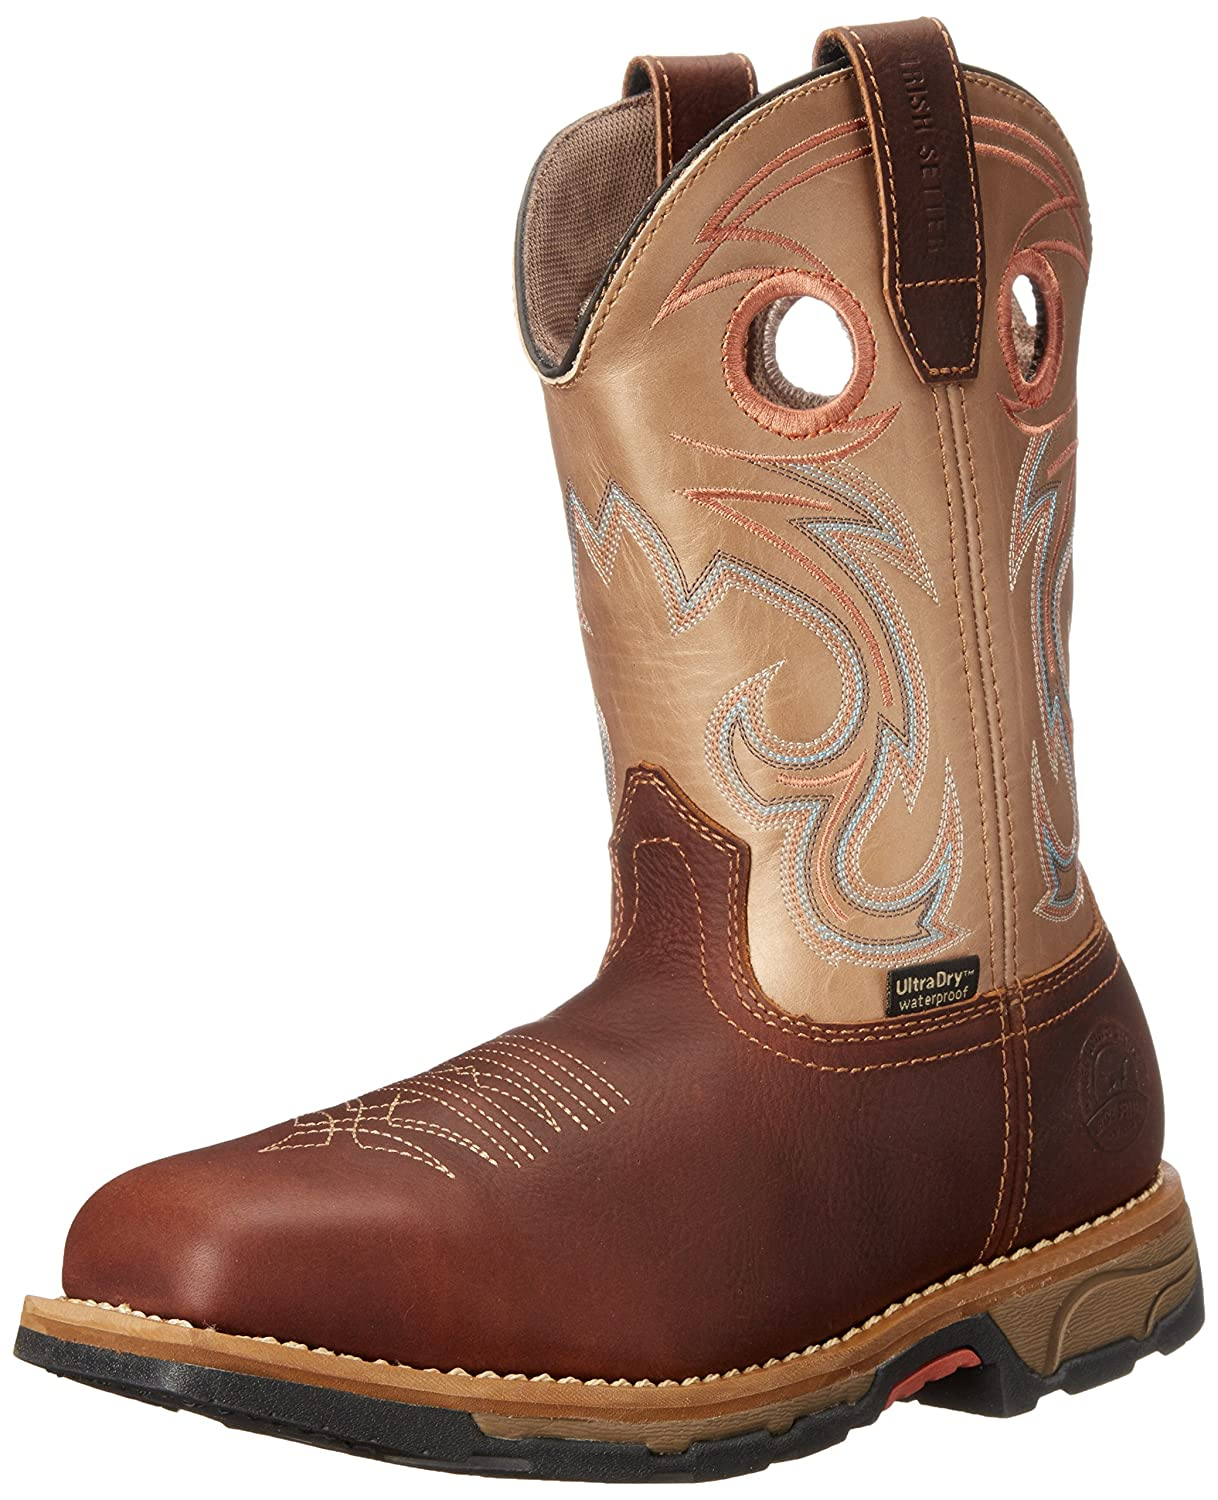 Irish Setter レディース Brown/Teal Accent 7.5 womens_us 7.5 womens_usBrown/Teal Accent B012F9BKHA